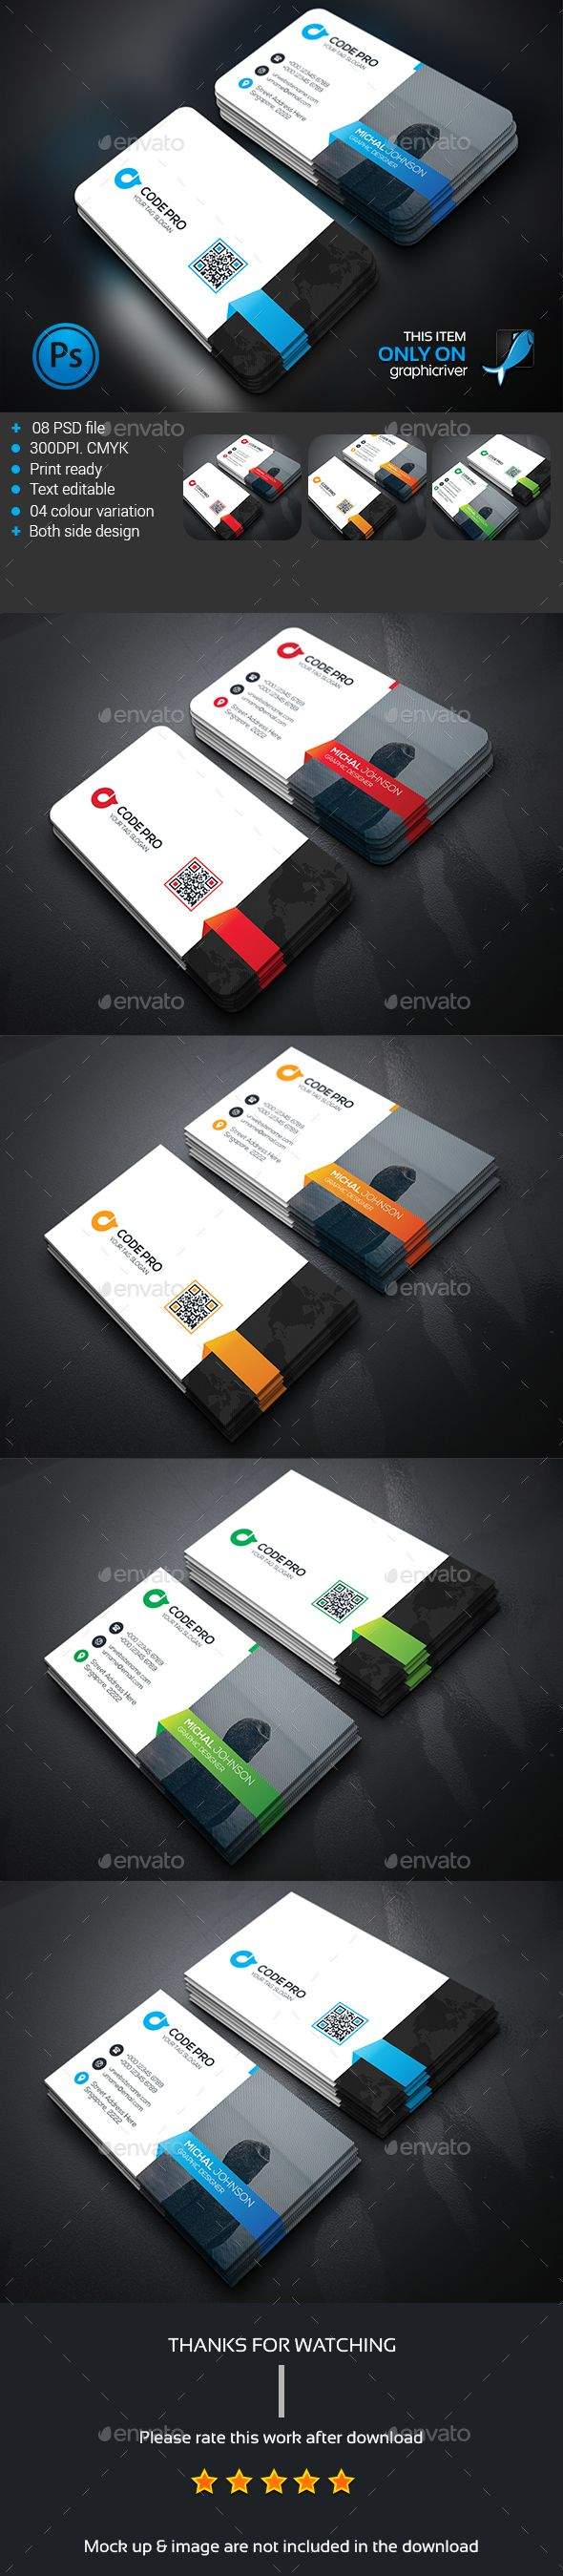 15 best cards n logos images on Pinterest | Corporate identity ...